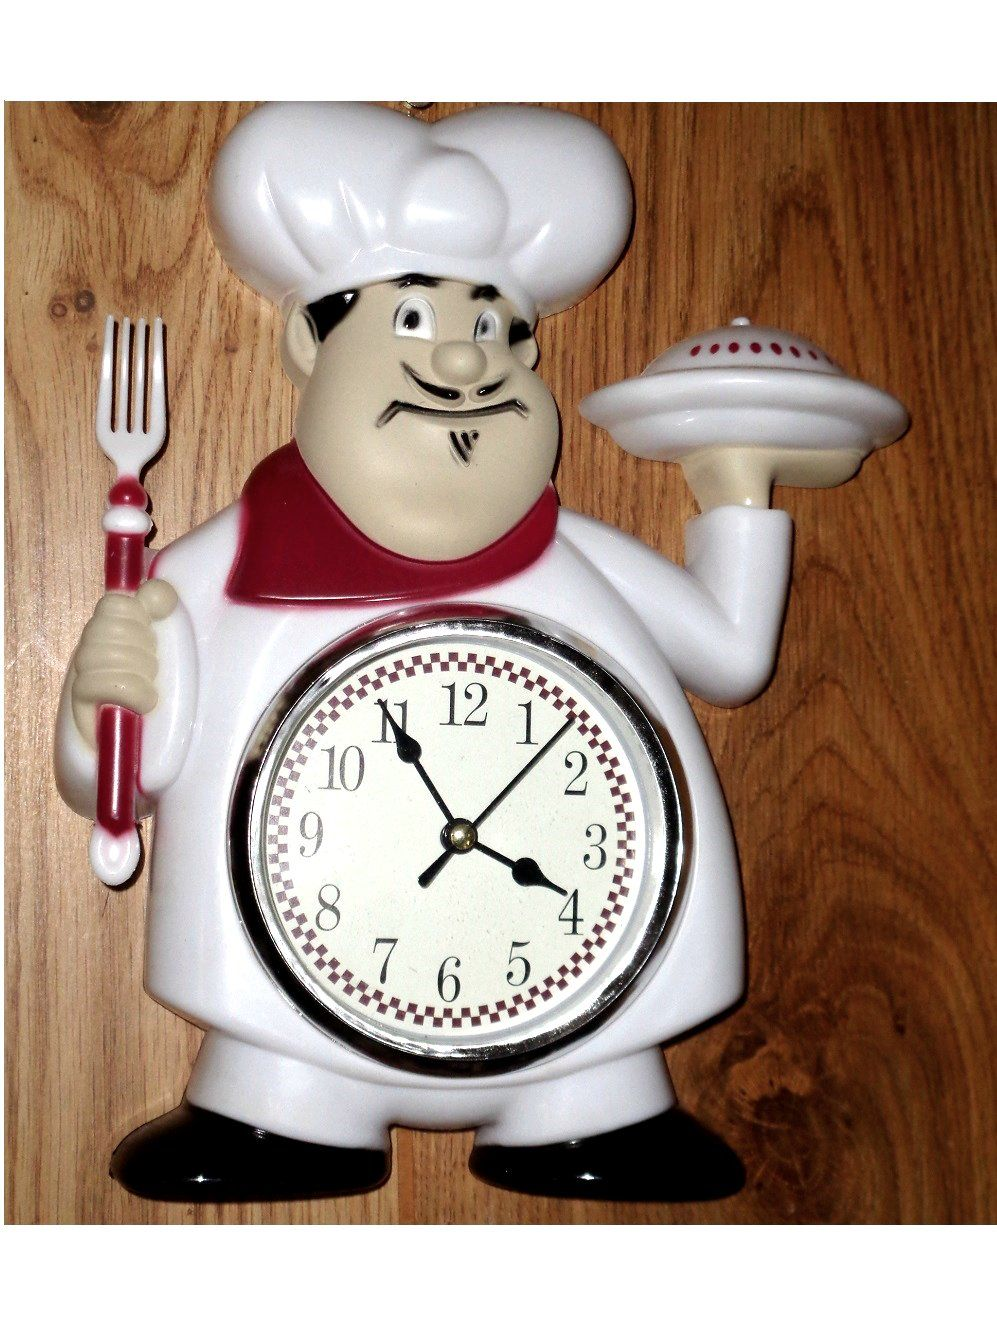 Fat Italian Chef Kitchen Wall Clock Red White $21.95 | Fat Chefs ...